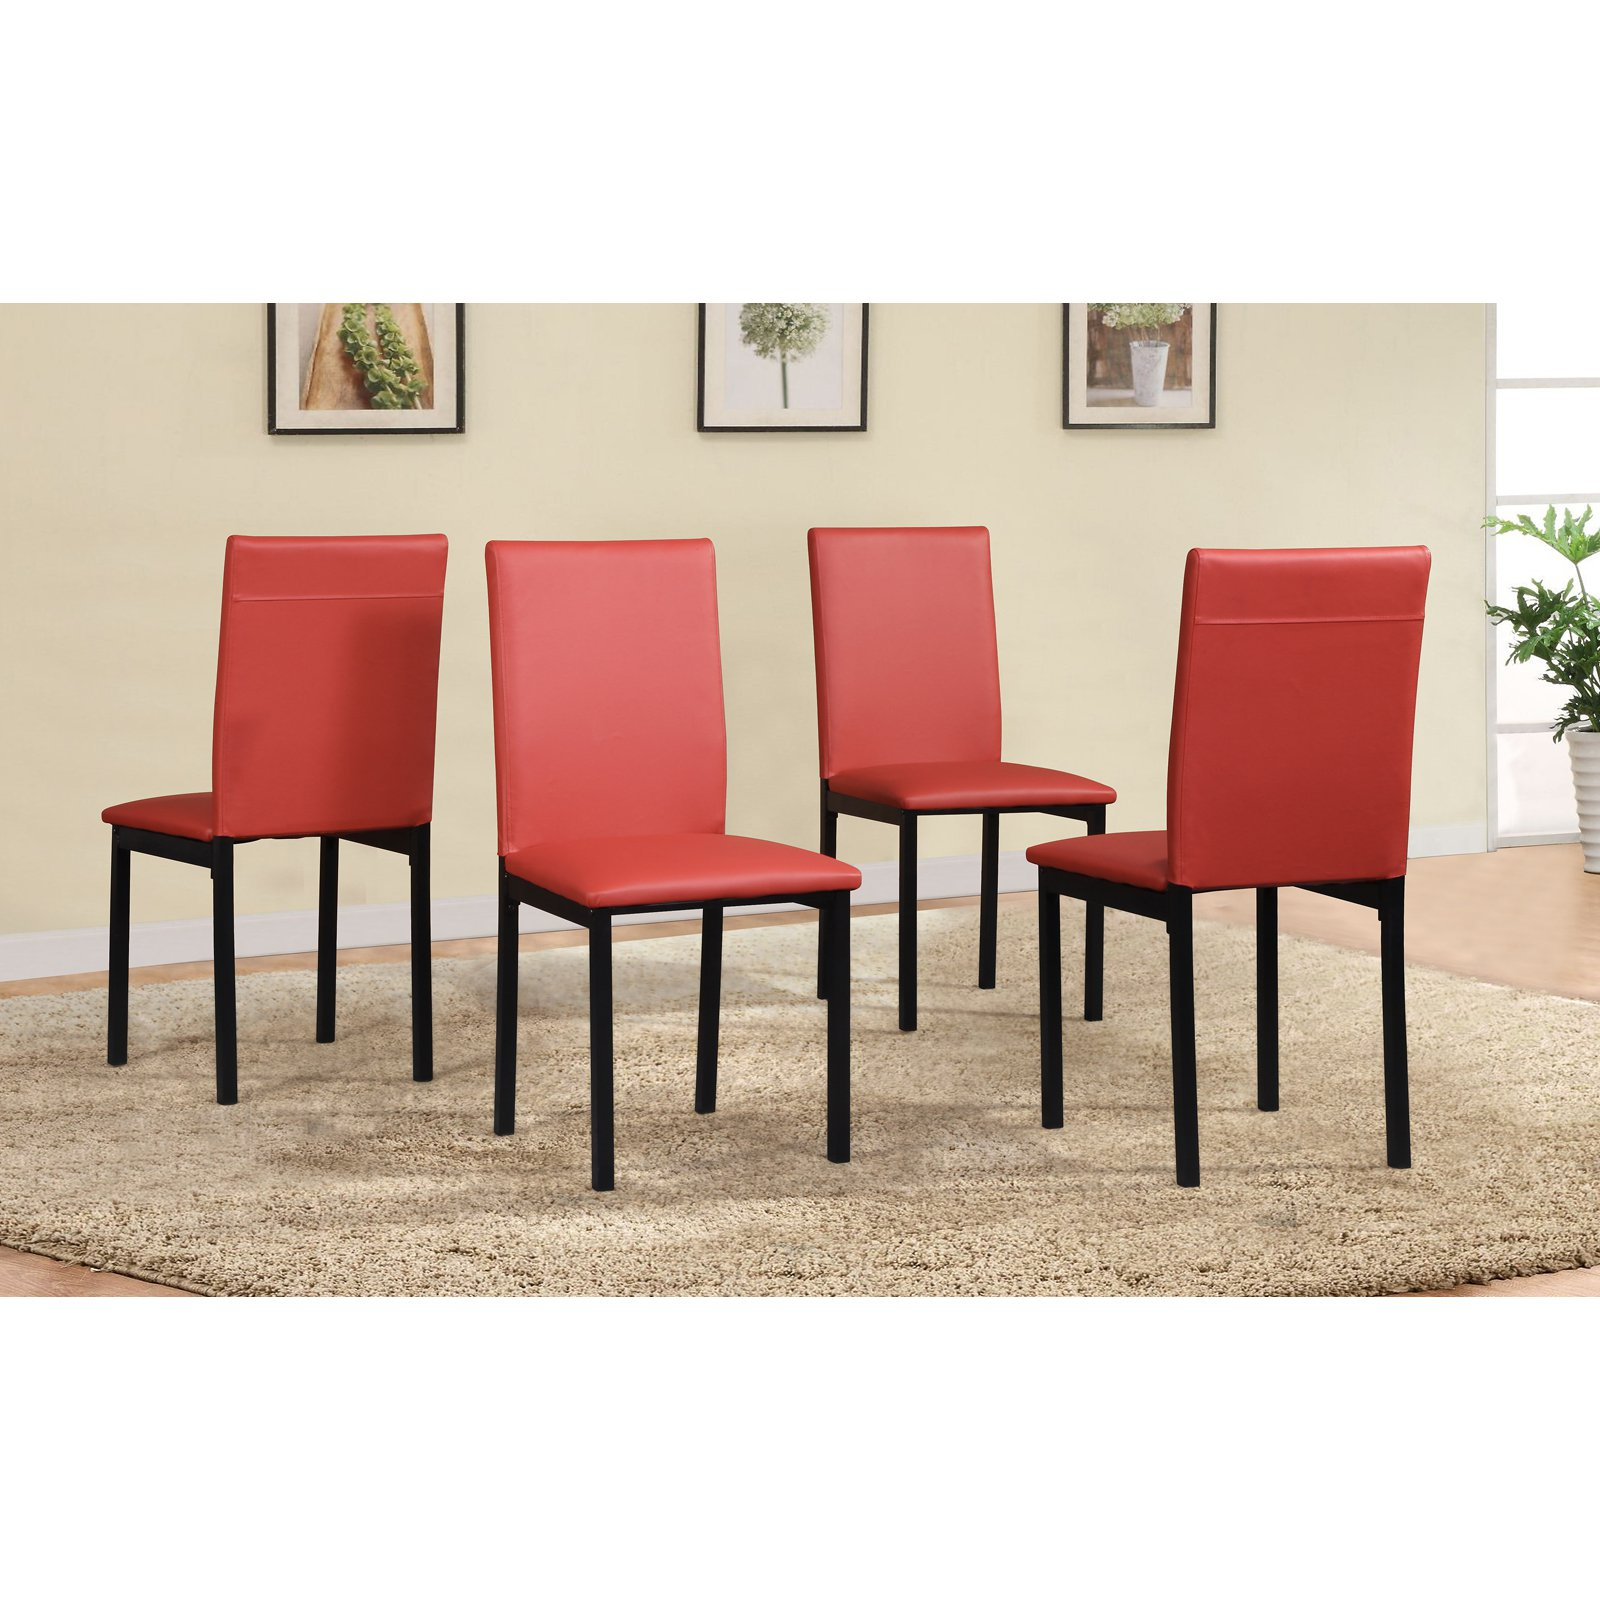 Widely Used Noyes 5 Piece Dining Sets With Regard To Roundhill Furniture Noyes Faux Leather Dining Side Chair – Set Of  (View 20 of 20)